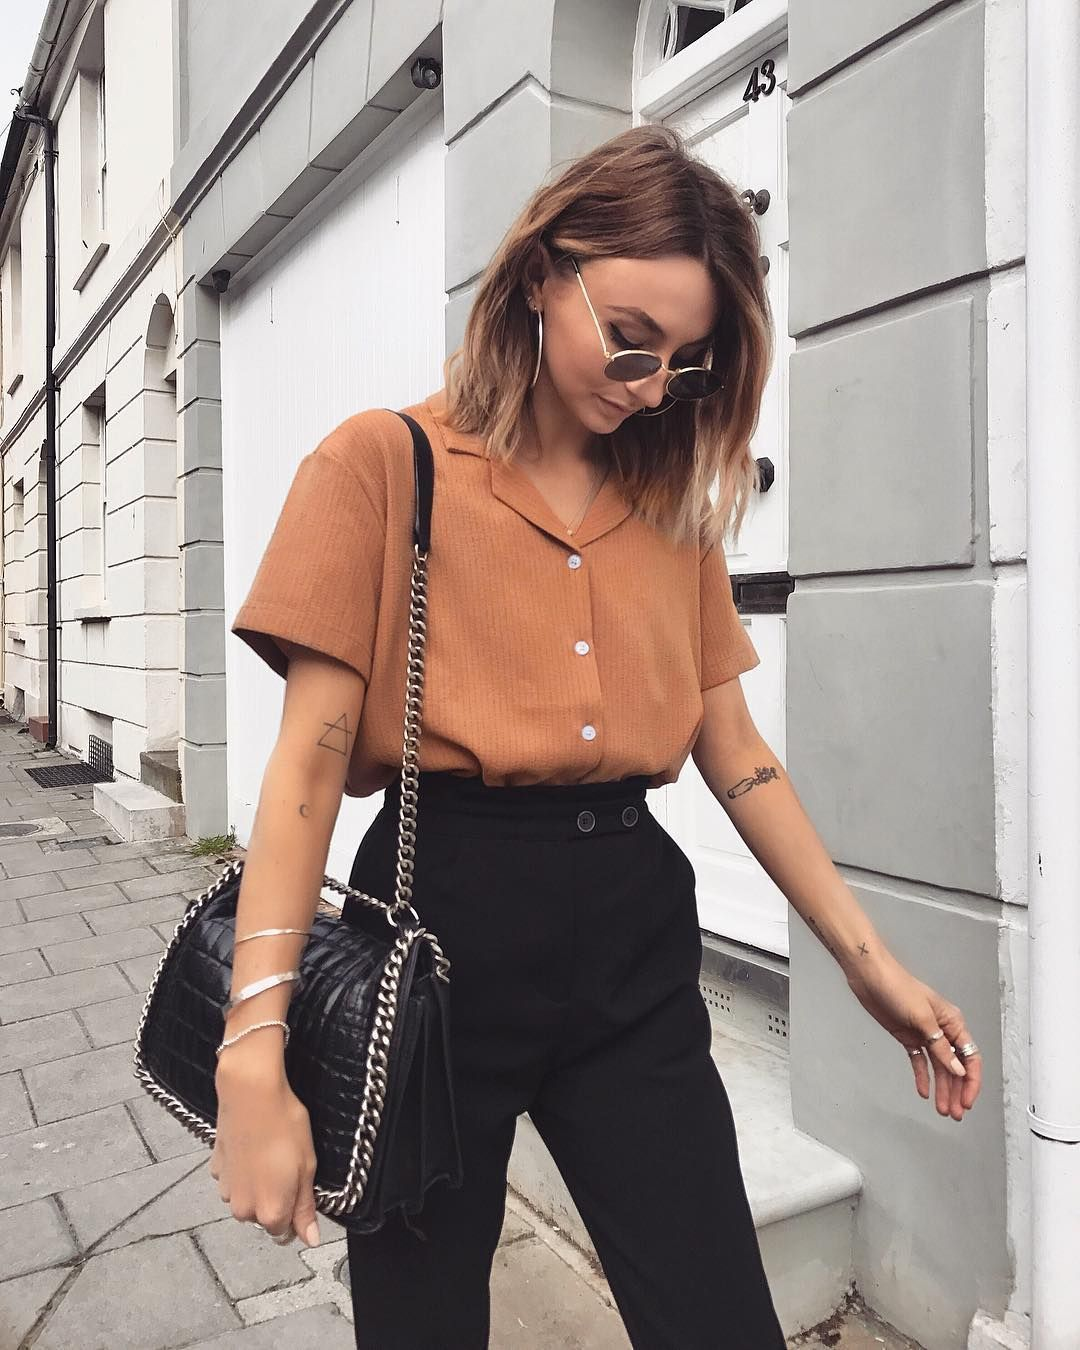 Pin jetzt, überprüfe die Outfit-Ideen später. Kleiderideen / Outfit / Outfits / Auswahl …   – Trendy outfits